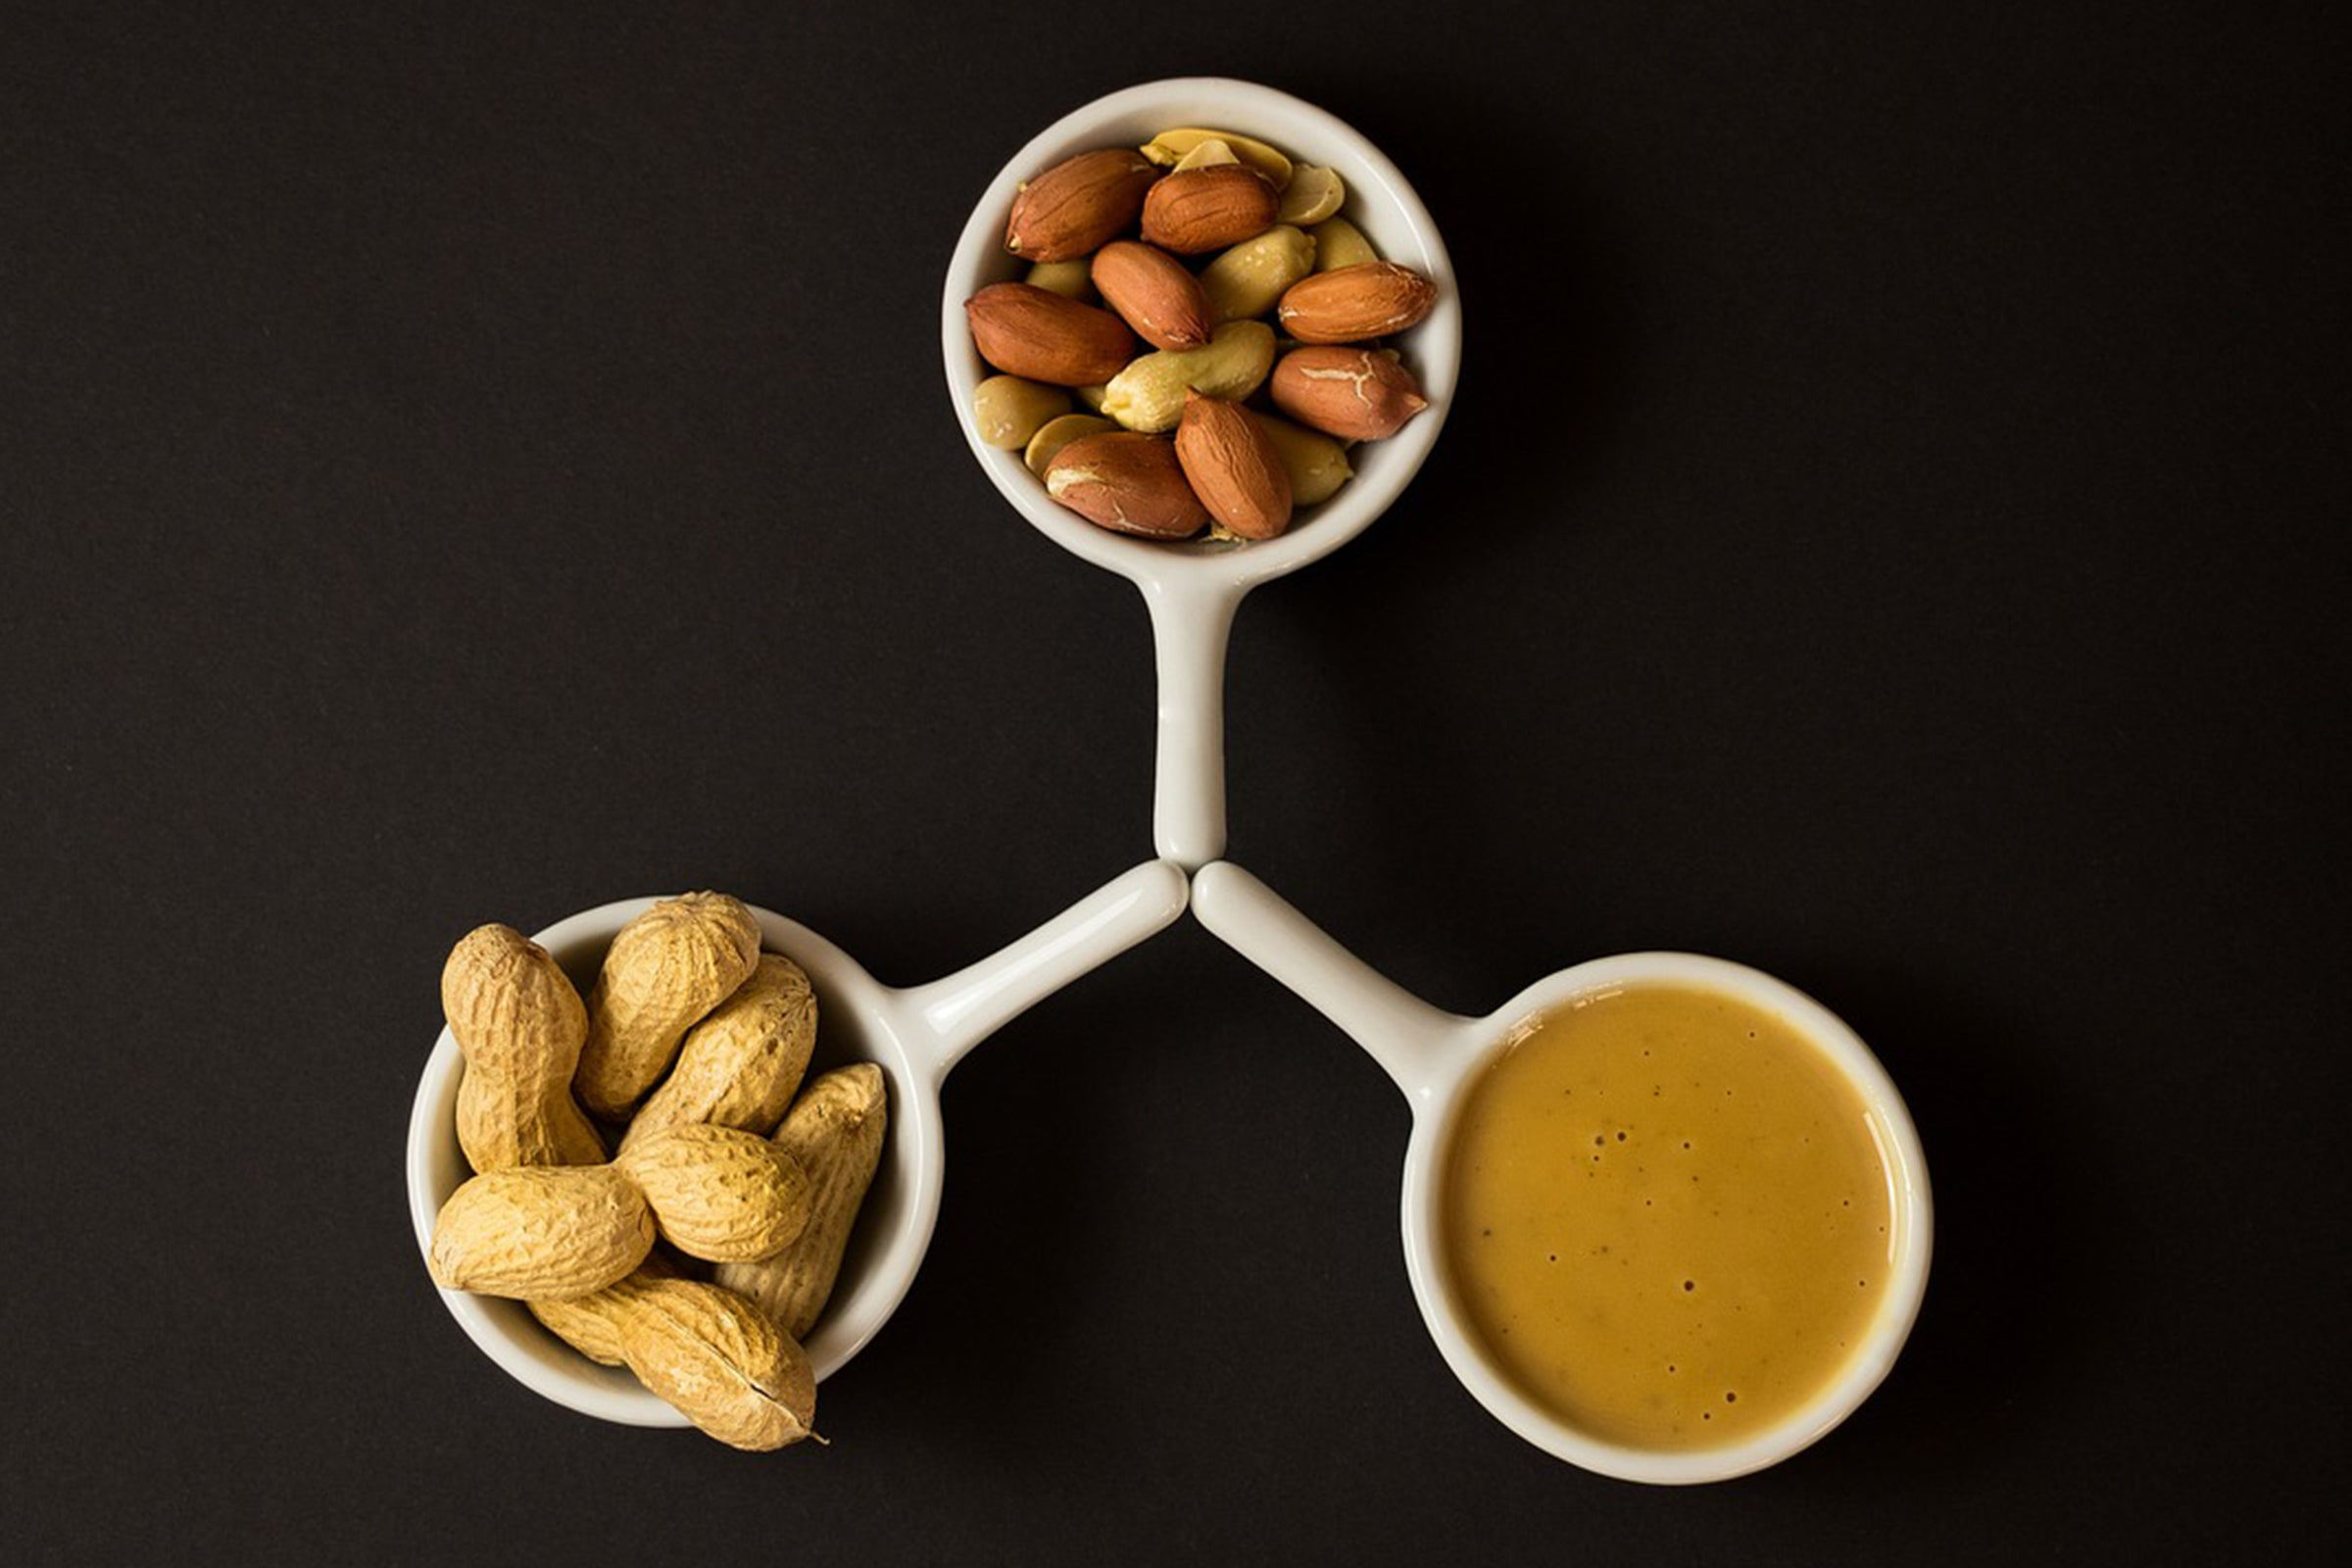 If you're looking to add some healthy fats in your diet, grab a jar of peanut butter.